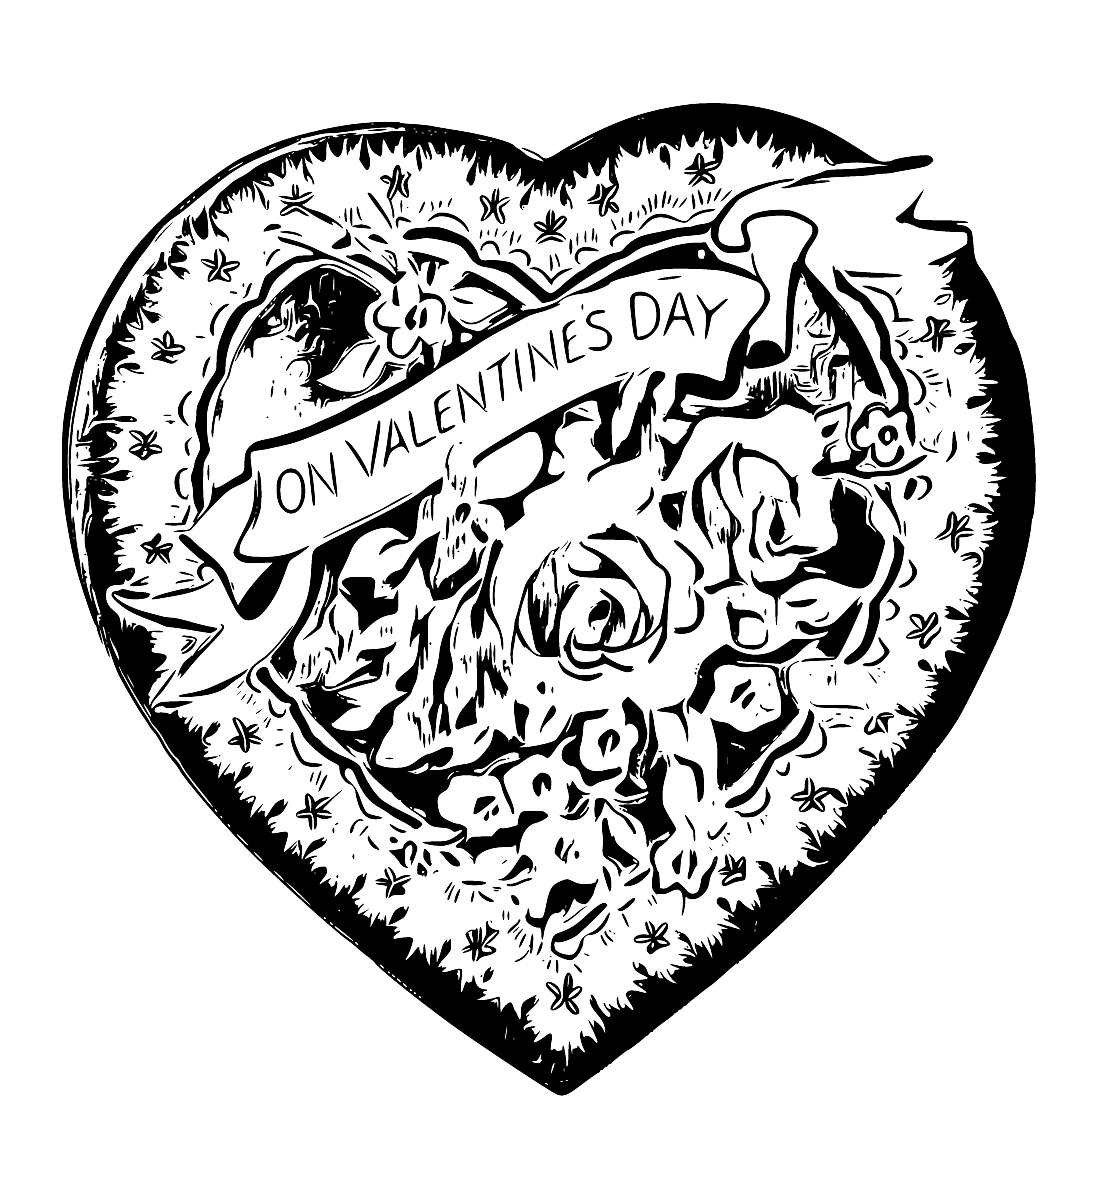 Retro clipart heart. Vintage drawing at getdrawings